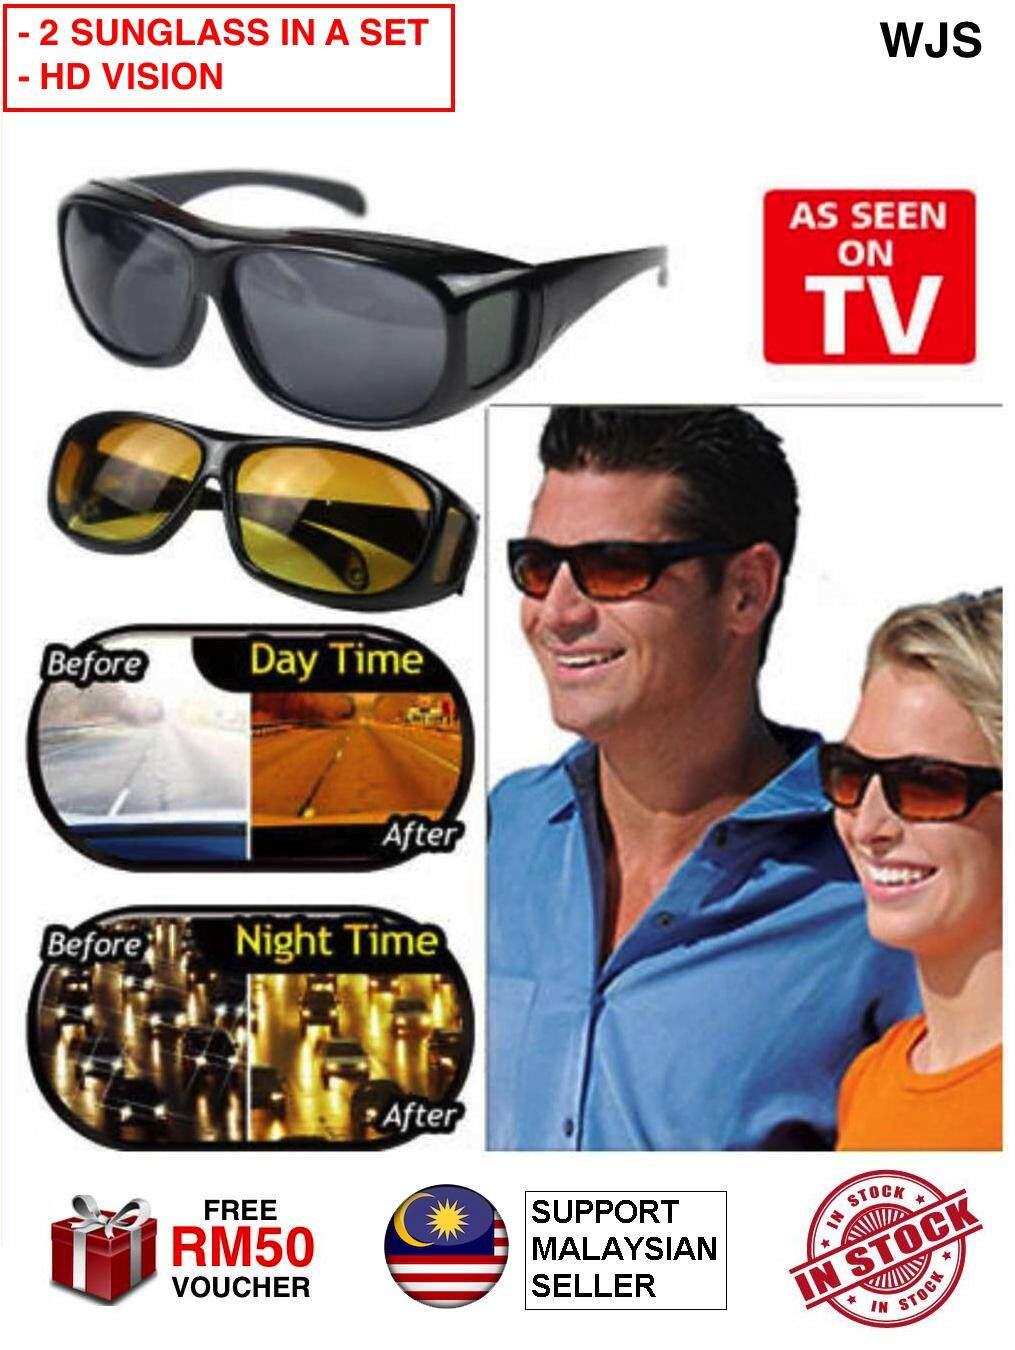 (2 In A Set) Wjs Hd Vision Sunglass Hd Vision Sunglasses Hd Sunglass Senior Sunglass Grandparent Sunglass Driving Sunglass Anti Glare Anti Reflection Wrap Around Sunglasses Spectacle Spectacles Black Brown [free Rm50 Voucher] By Wjs.